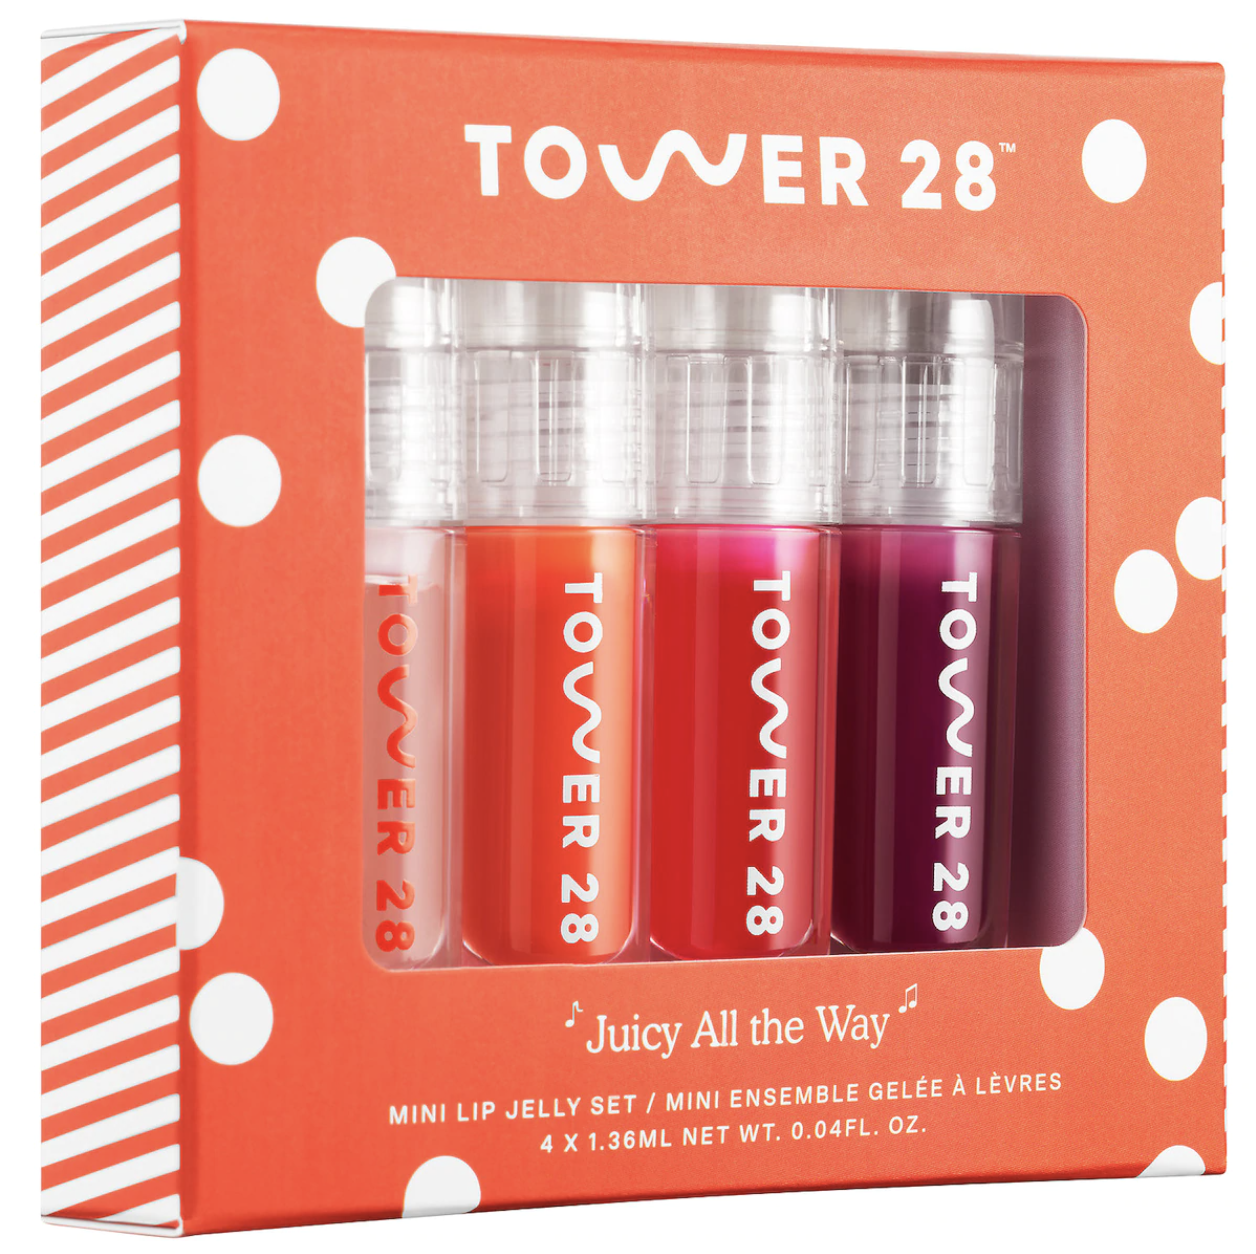 The lip jellies in shades of deep pinks, light red, and clear